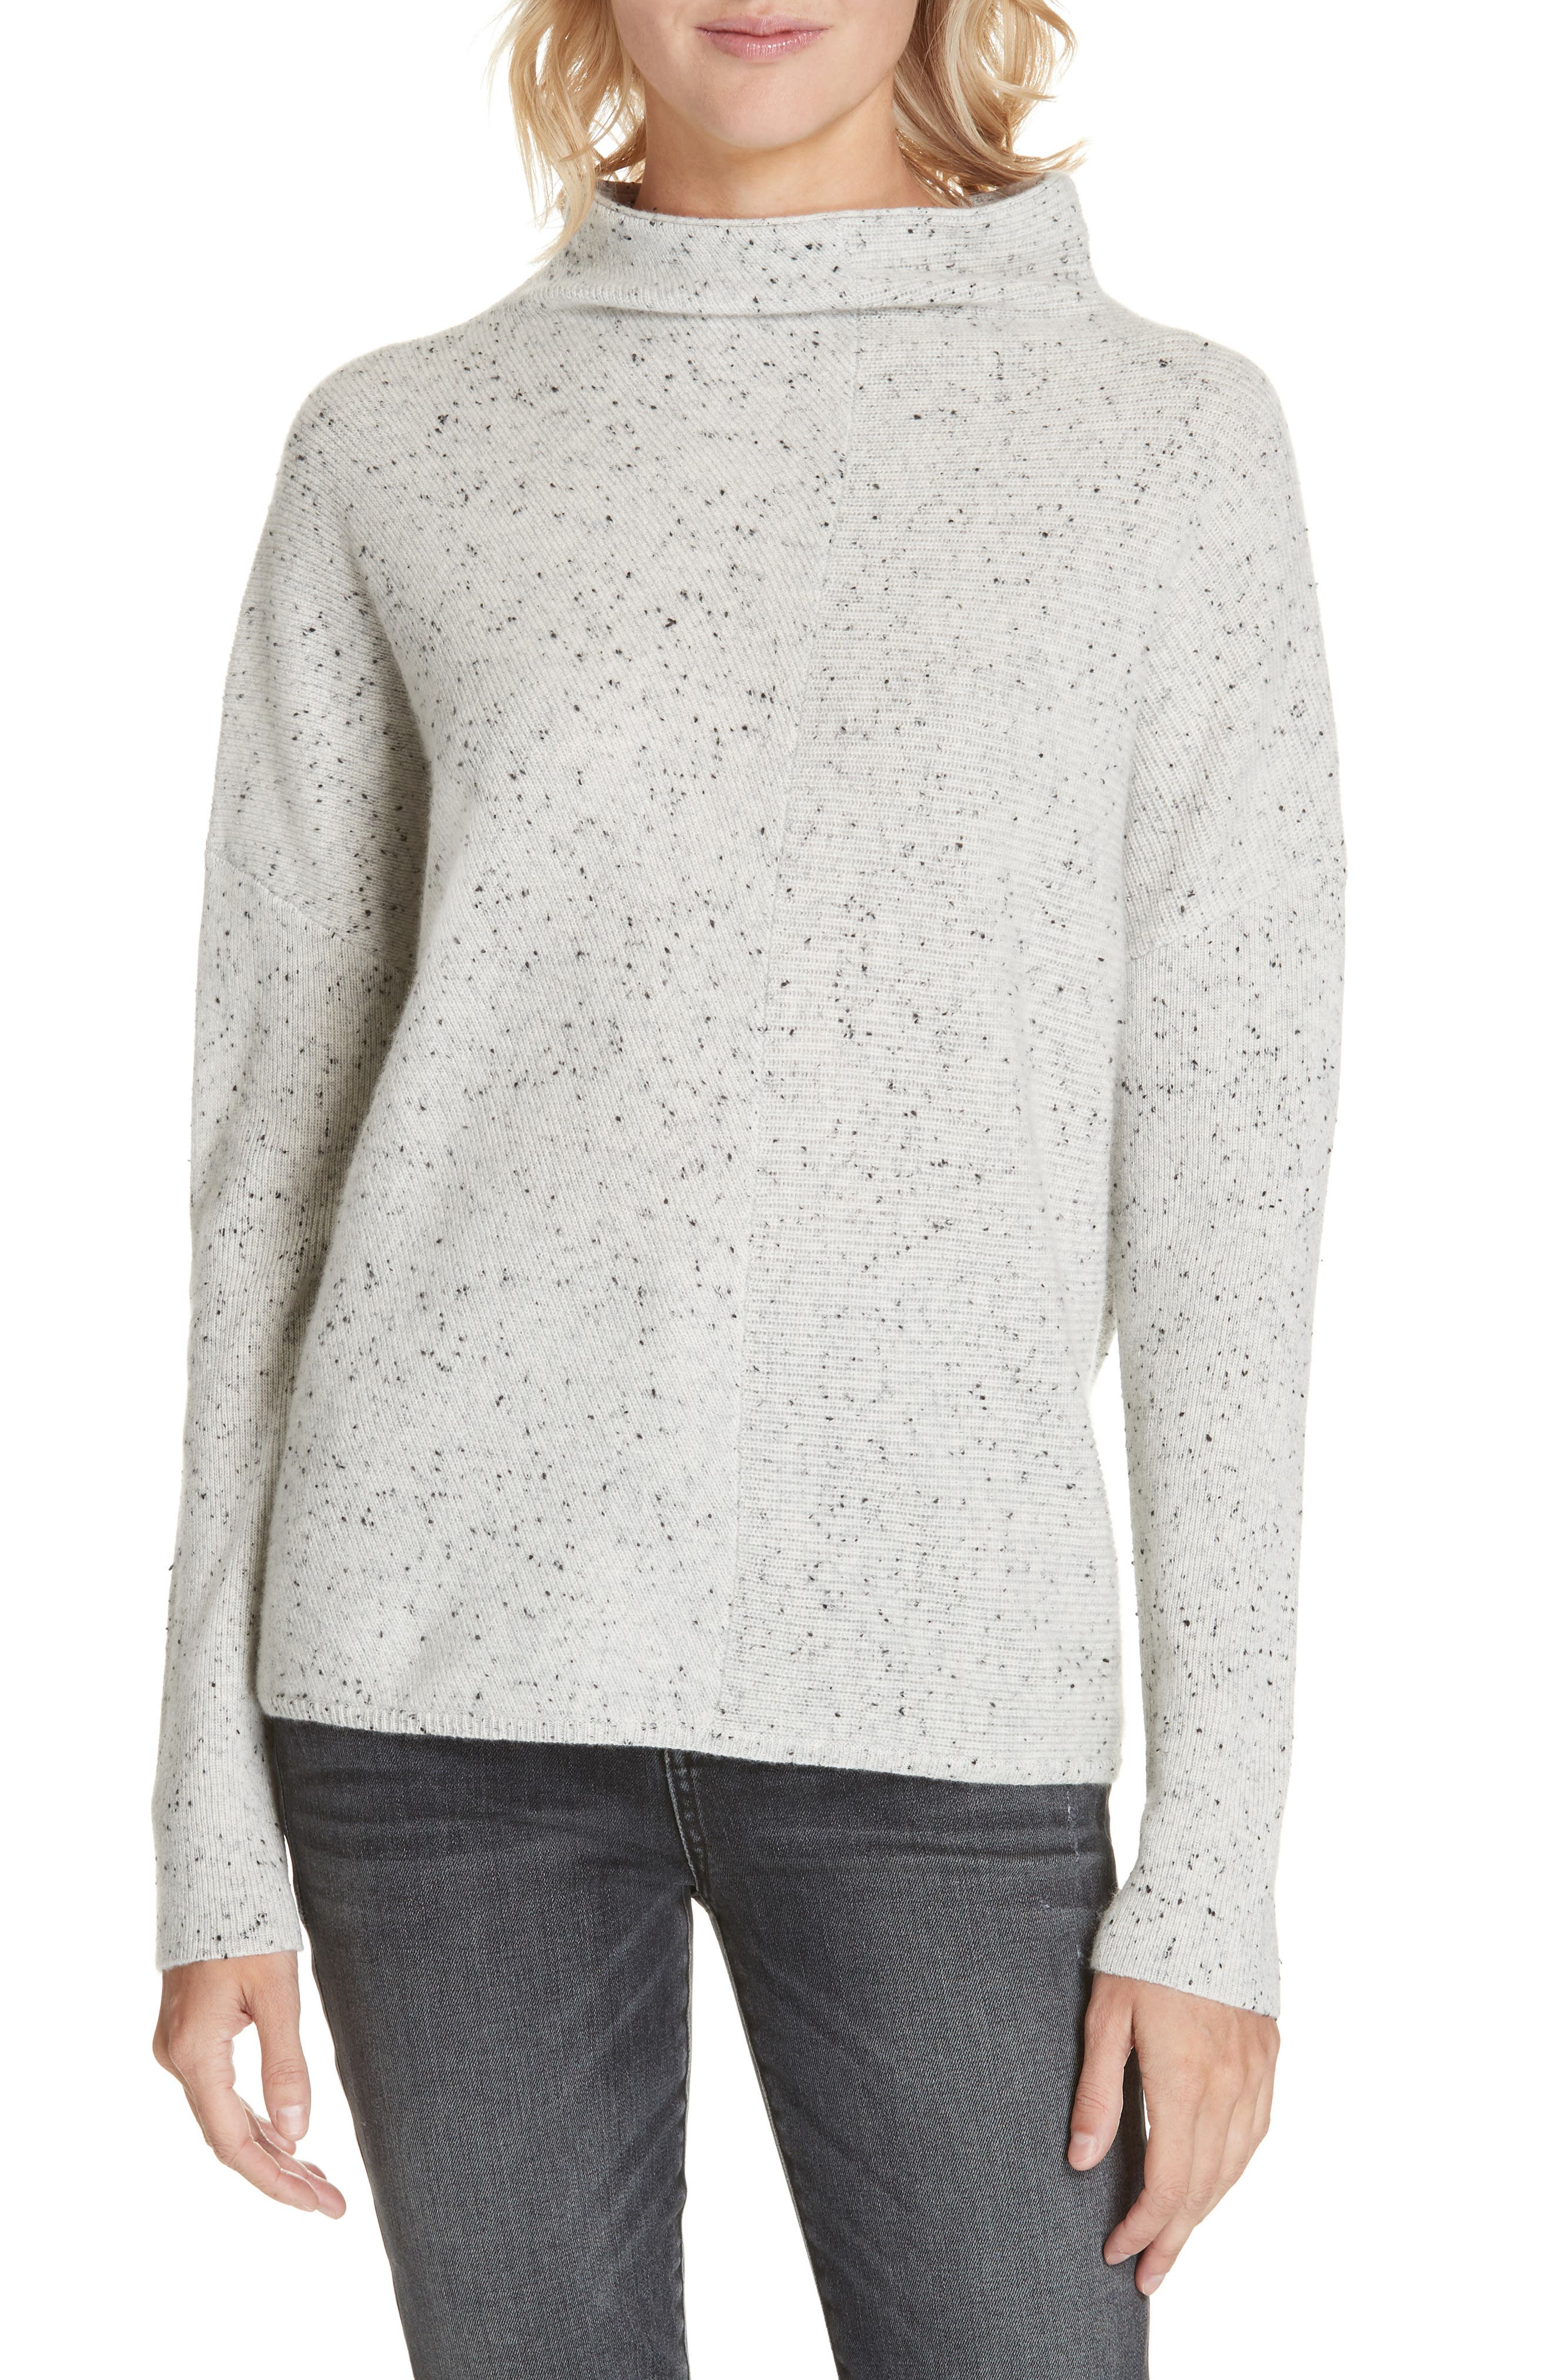 Cashmere Directional Rib Mock Neck Sweater,                         Main,                         color, 050